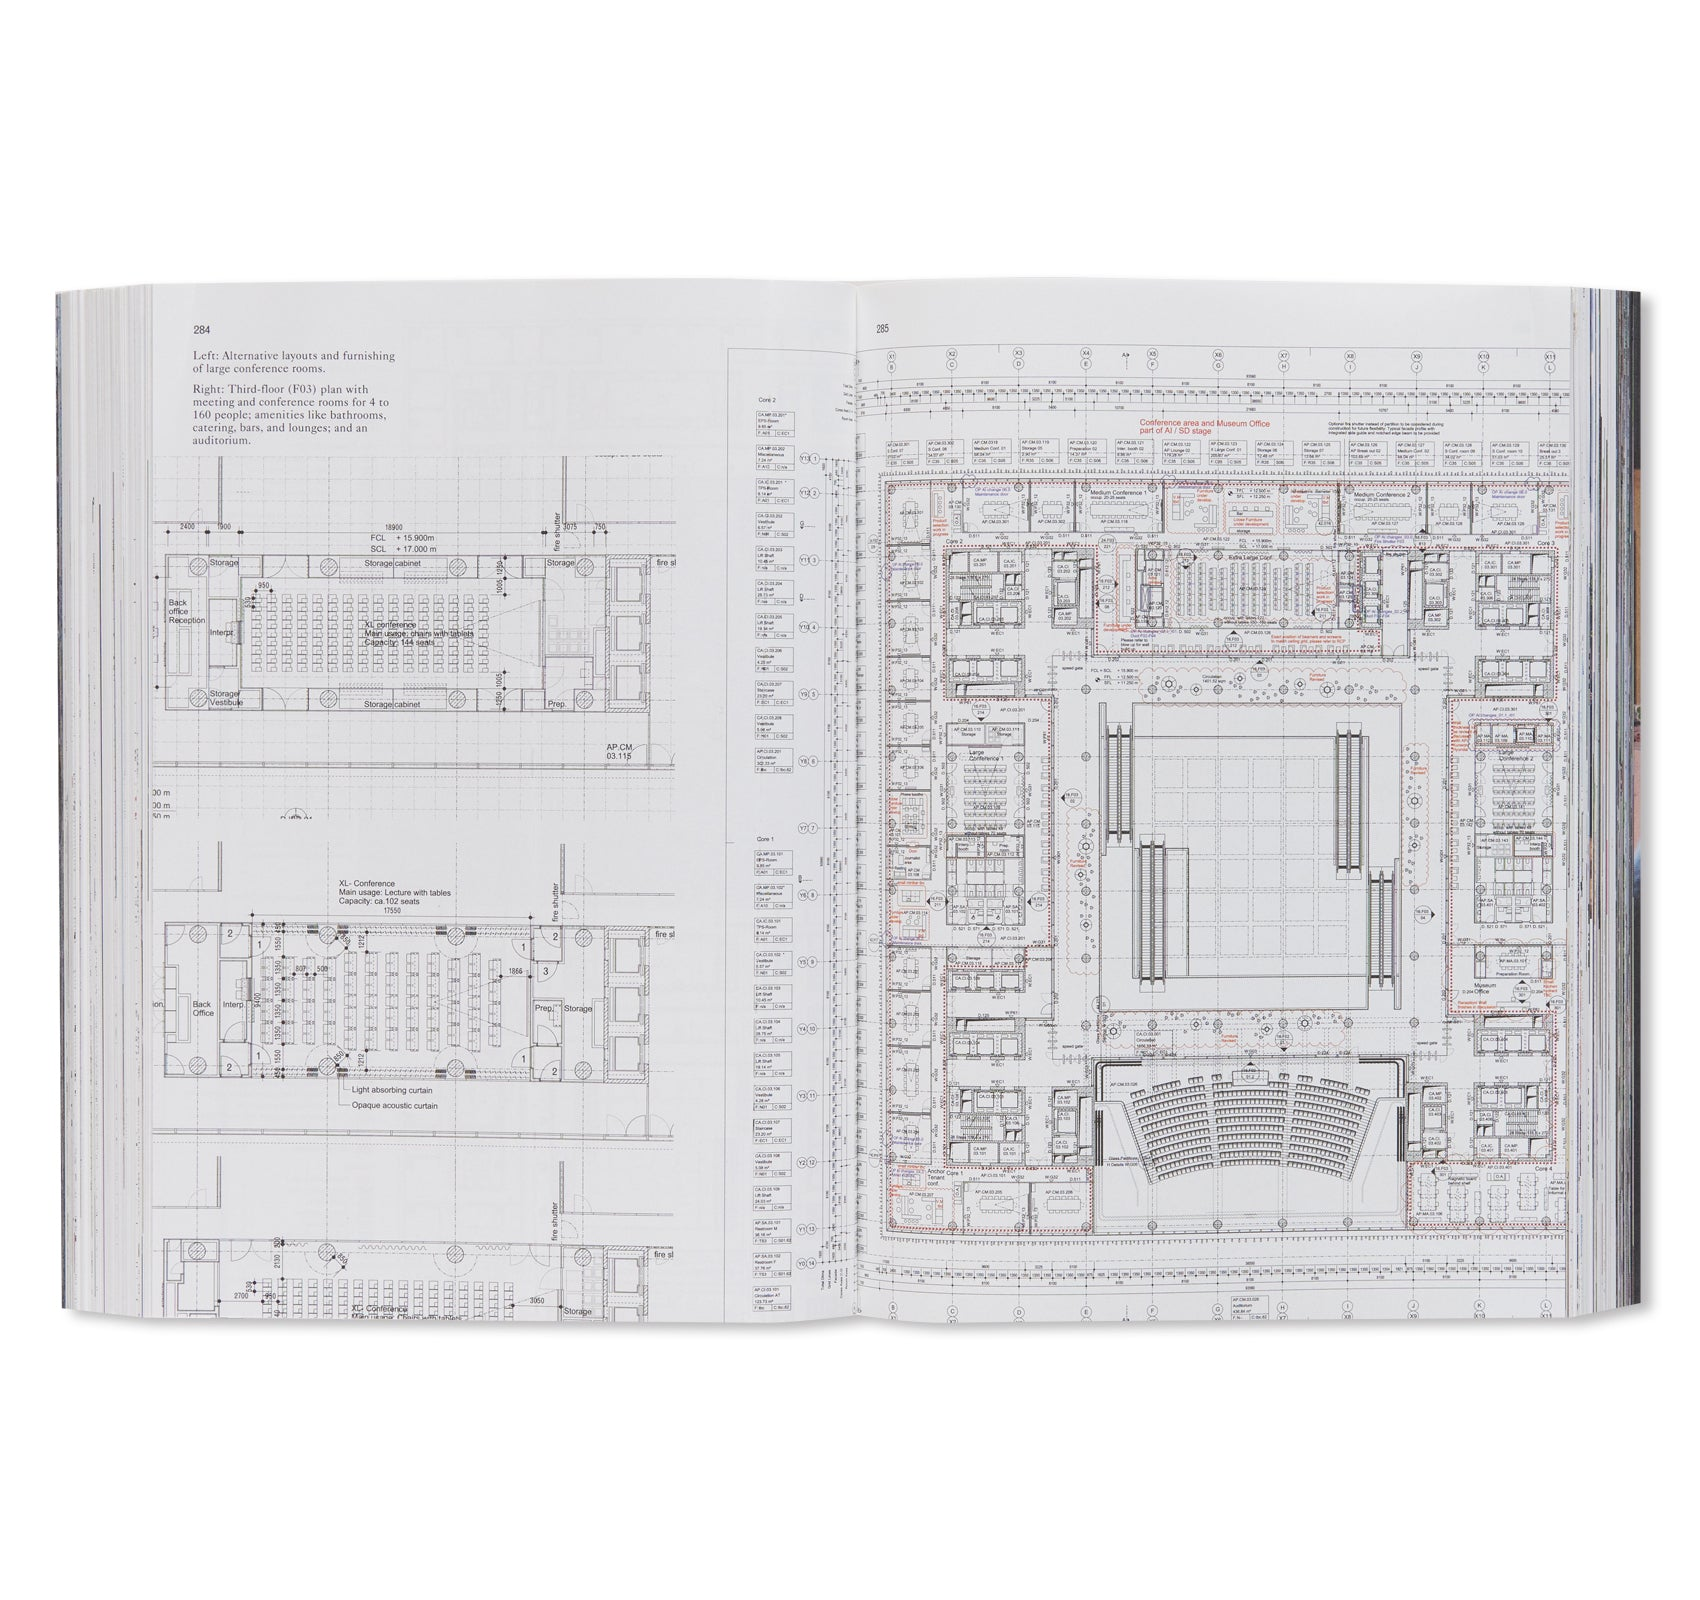 A BOOK ABOUT A LARGE BUILDING RECENTLY BUILT IN ASIA & AMOREPACIFIC HEADQUARTER by David Chipperfield